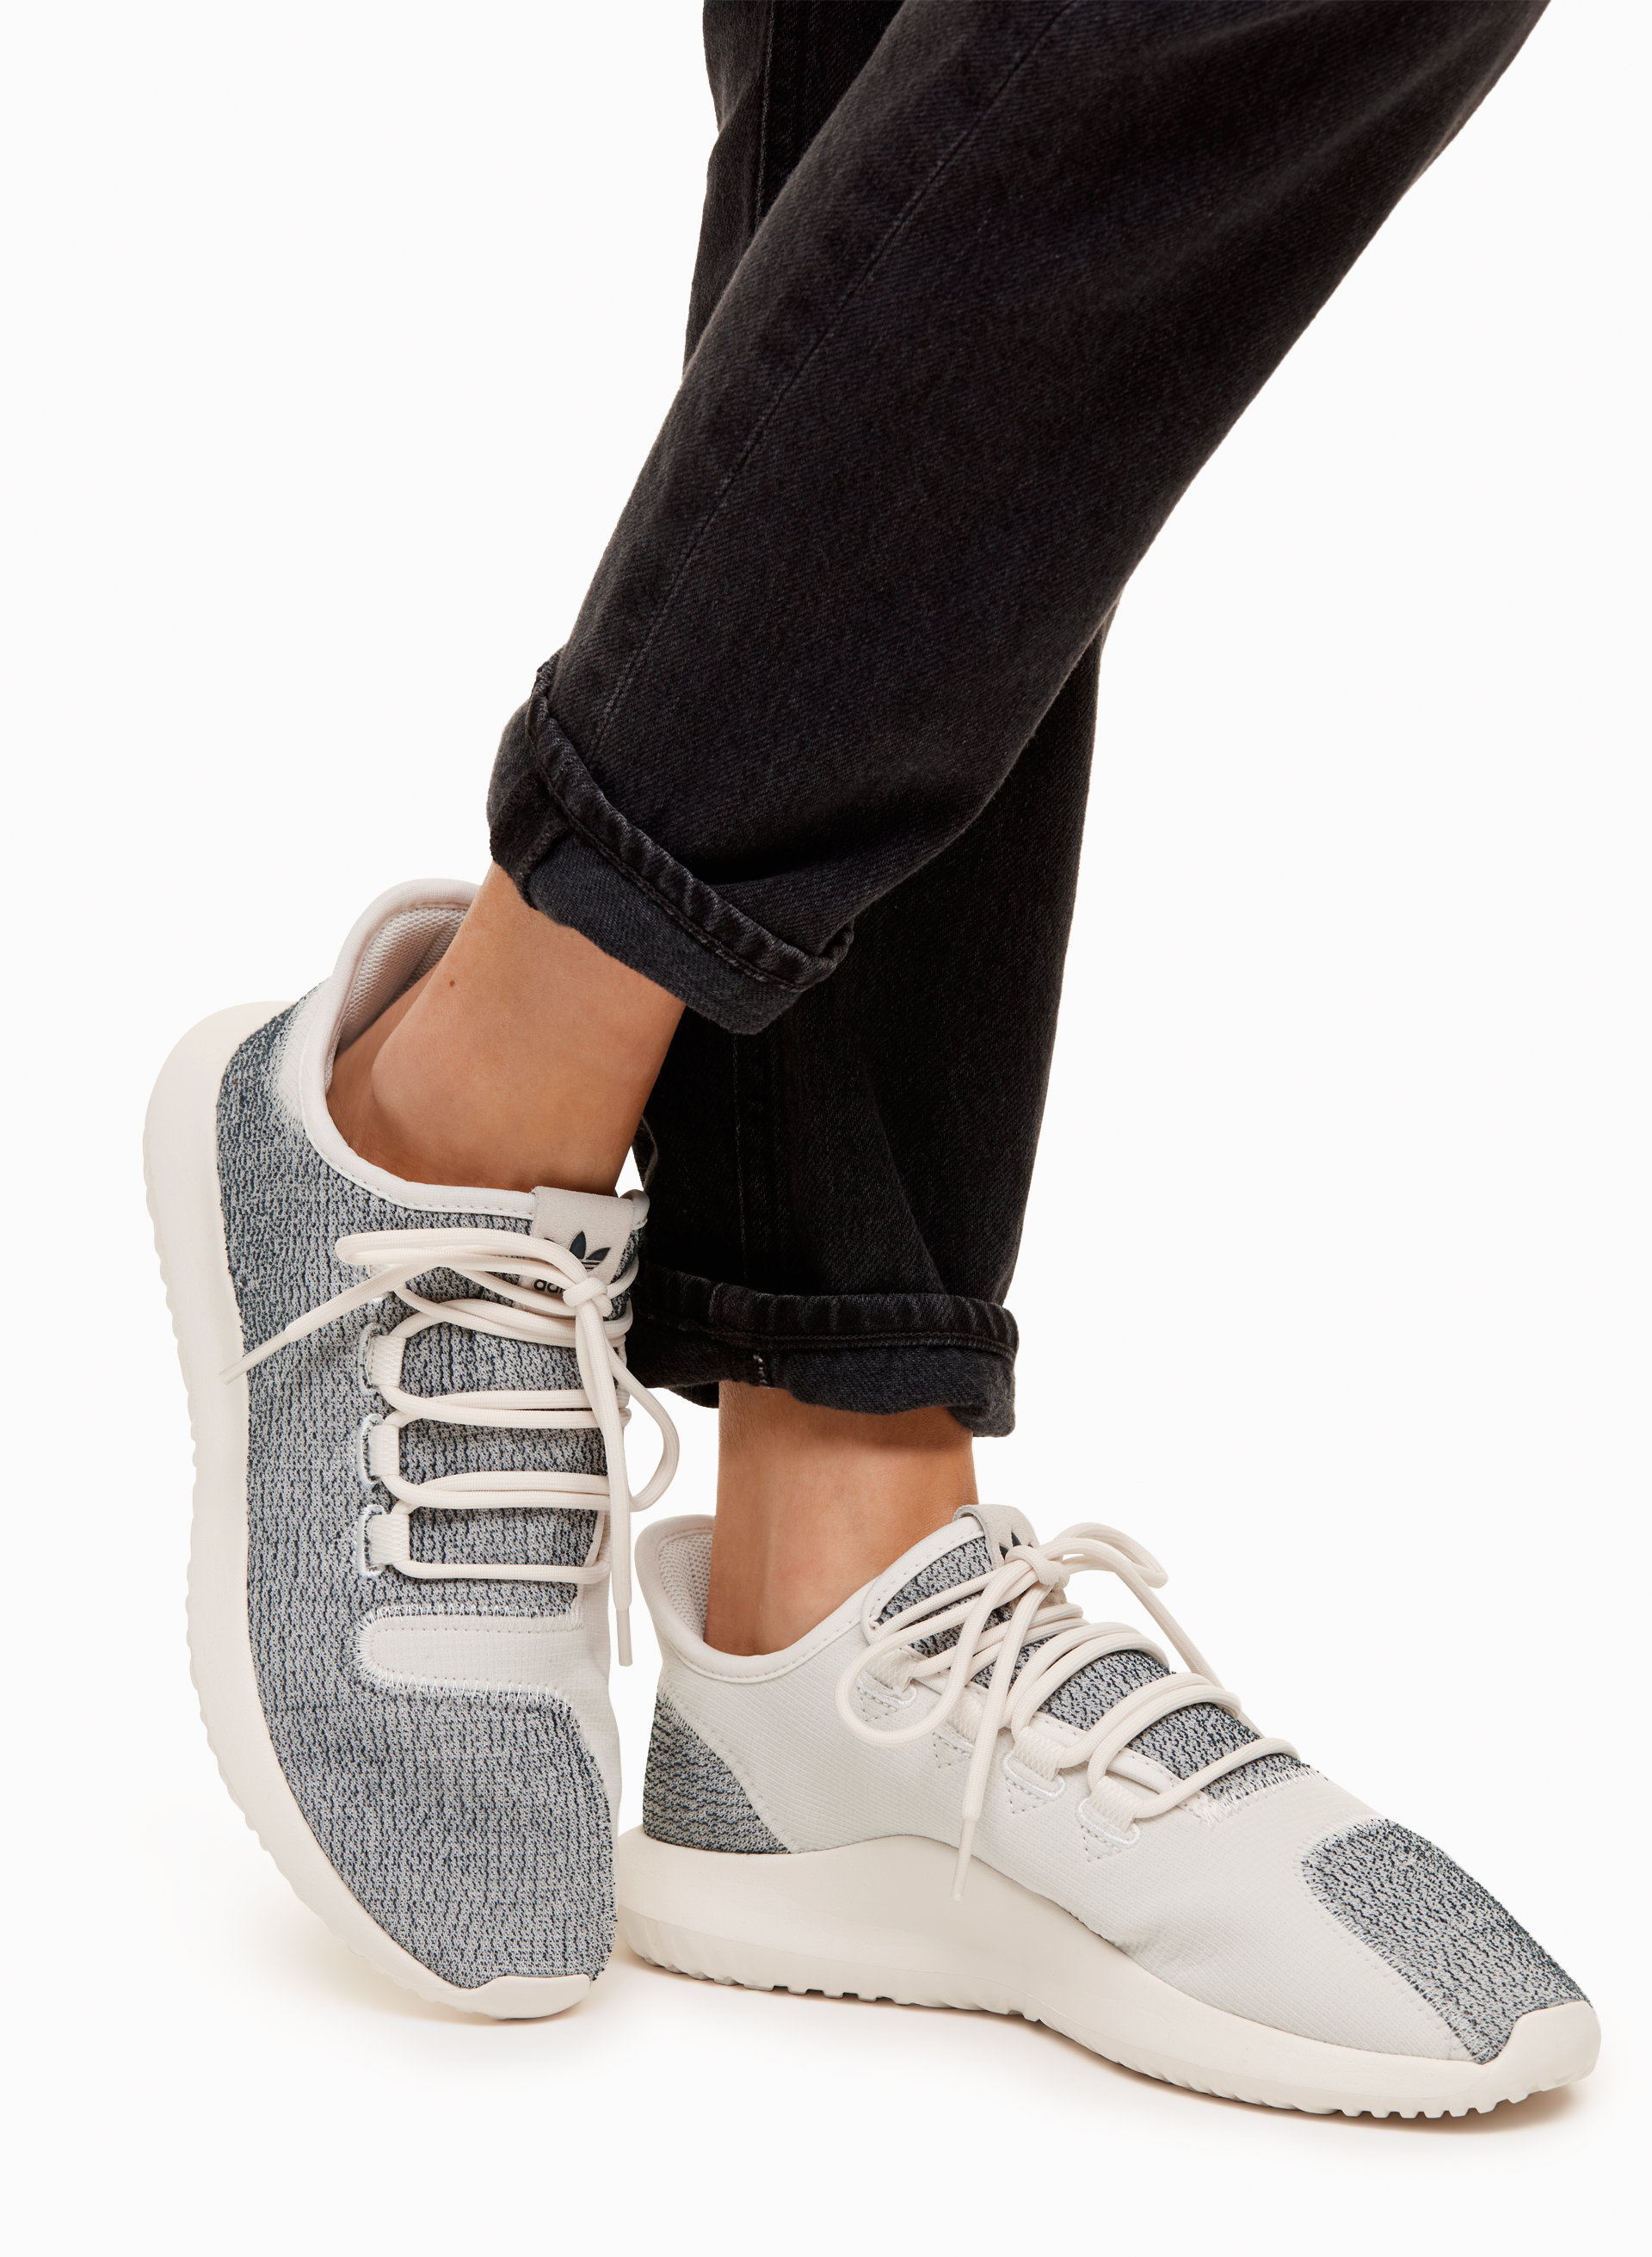 BB 8870 WOMEN TUBULAR SHADOW W ADIDAS GRAY WHITE